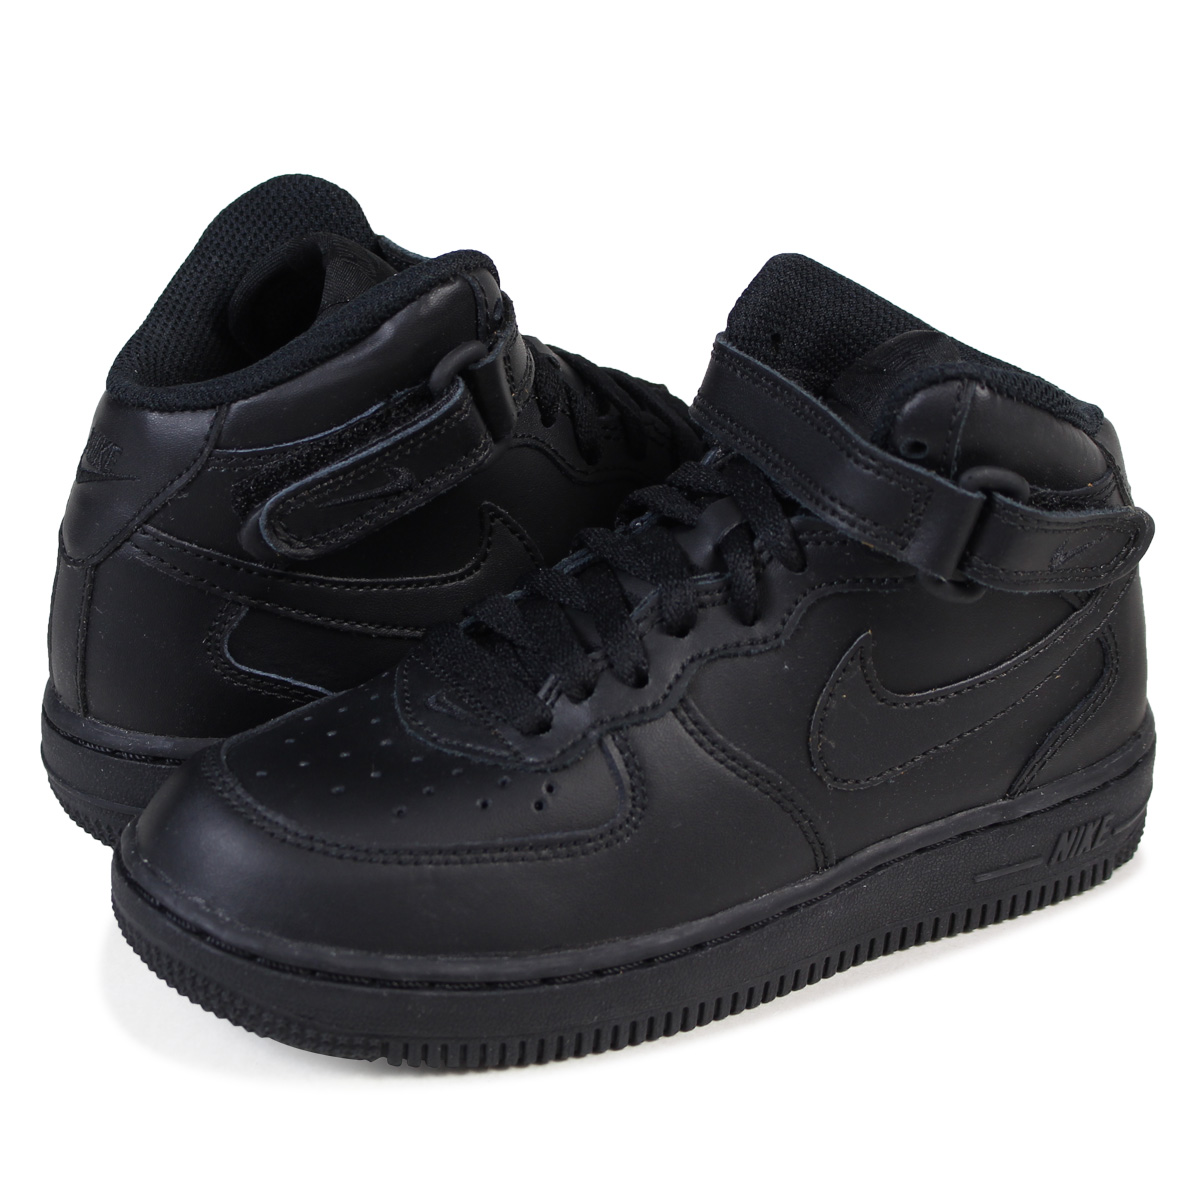 5e047dfce2d ALLSPORTS  NIKE AIR FORCE 1 PS Nike air force 1 mid kids sneakers ...